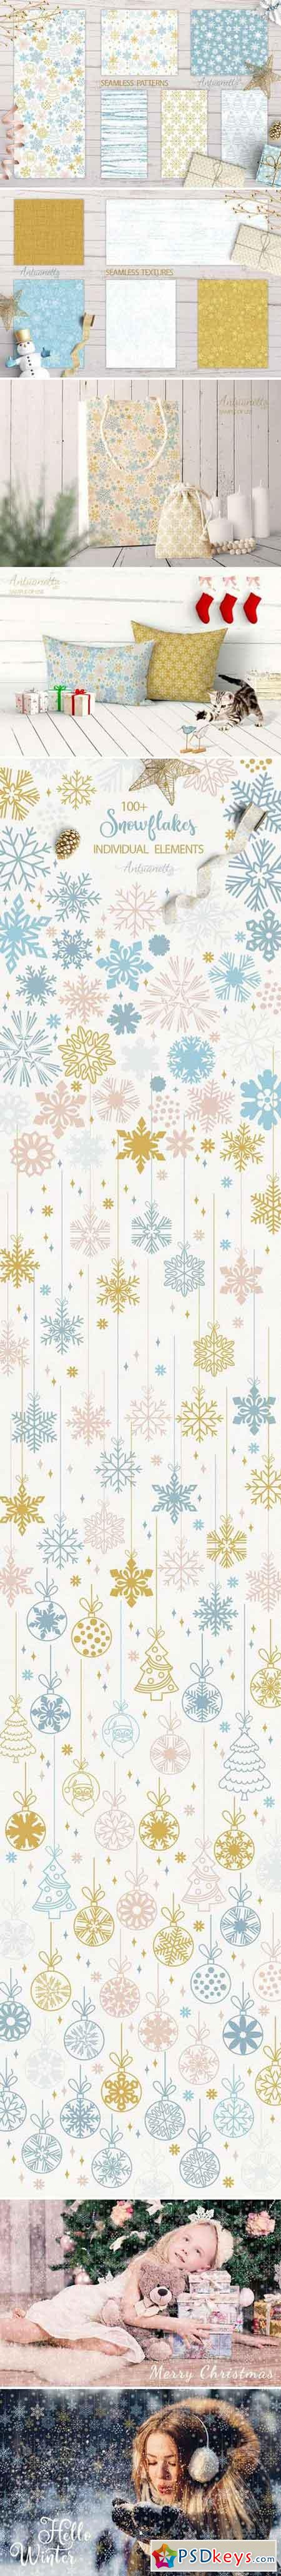 Sparkling snowflakes collection 2104105